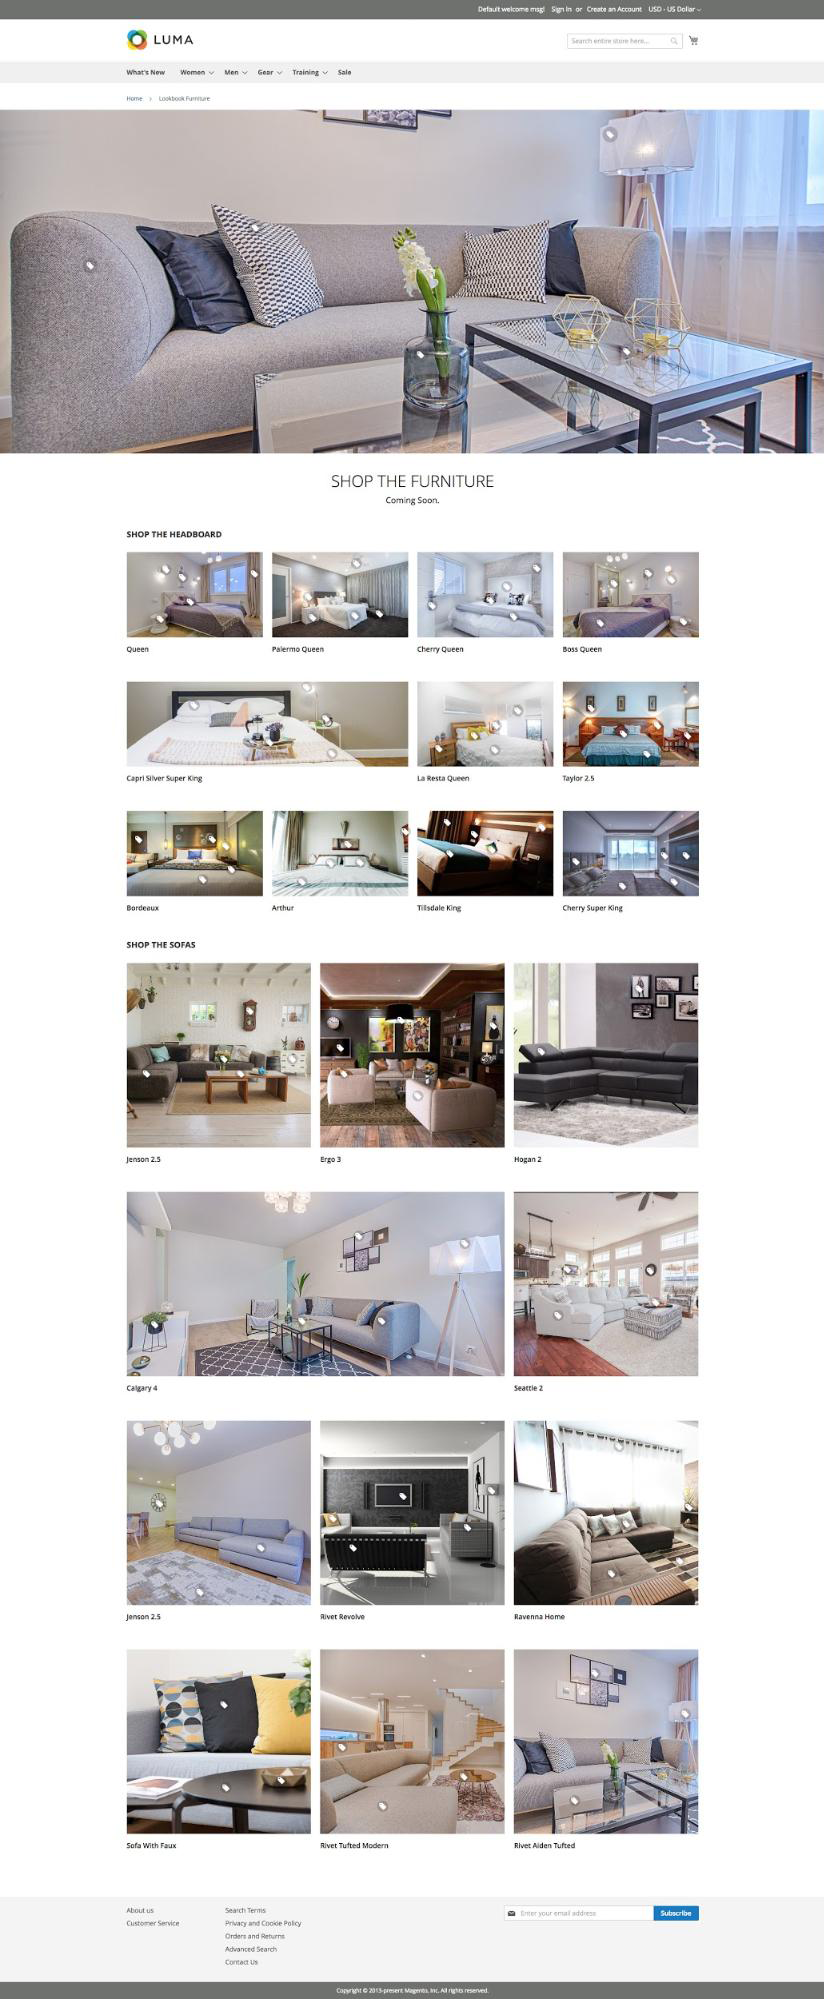 UB Content Slider Product Image Hotspot and Lookbook - Sample Furniture Lookbook page